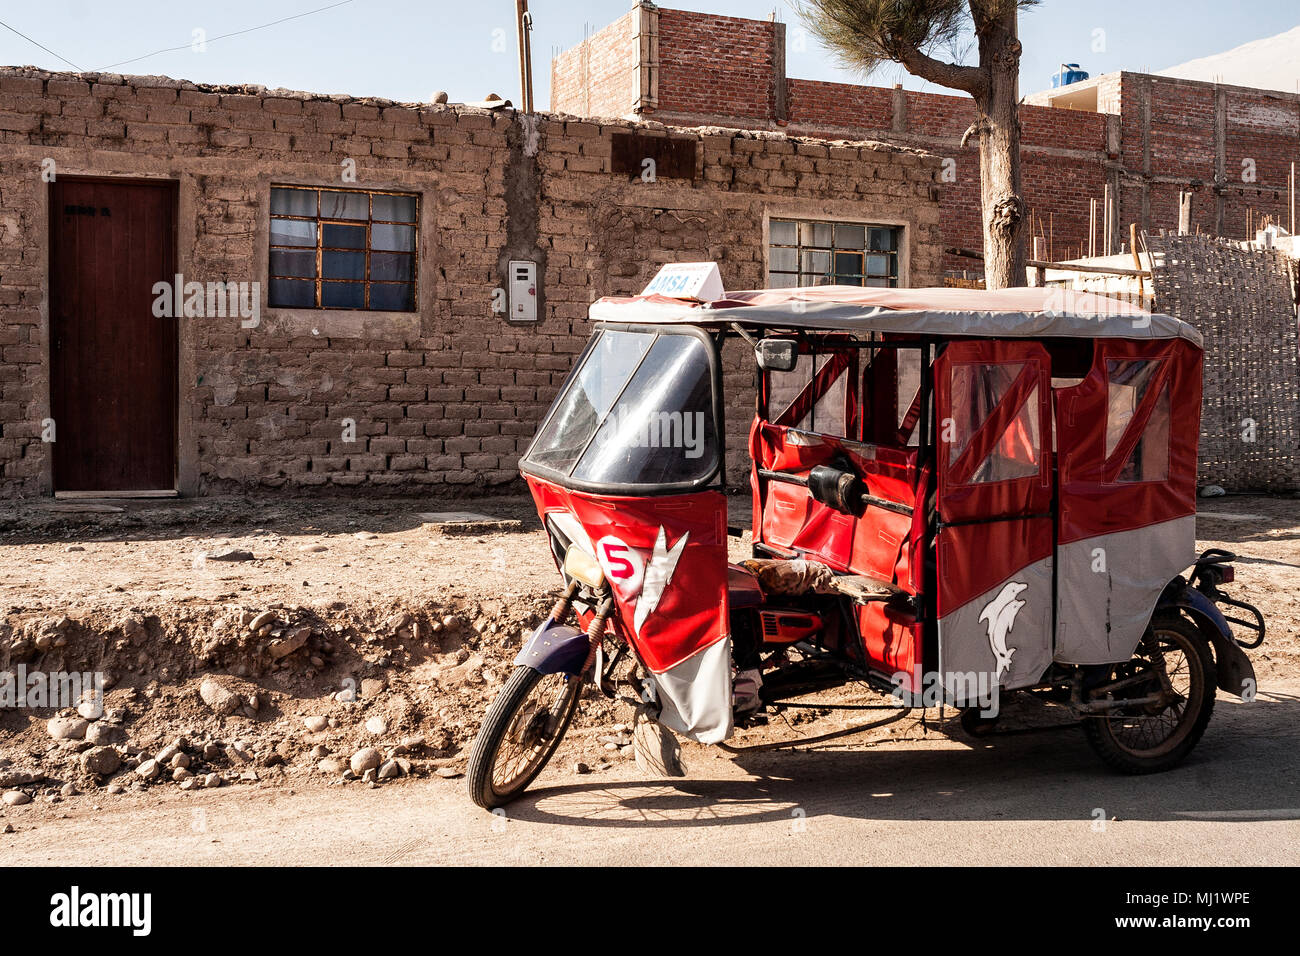 Moto taxi parked in front an adobe house. Acari, Department of Arequipa, Peru. - Stock Image